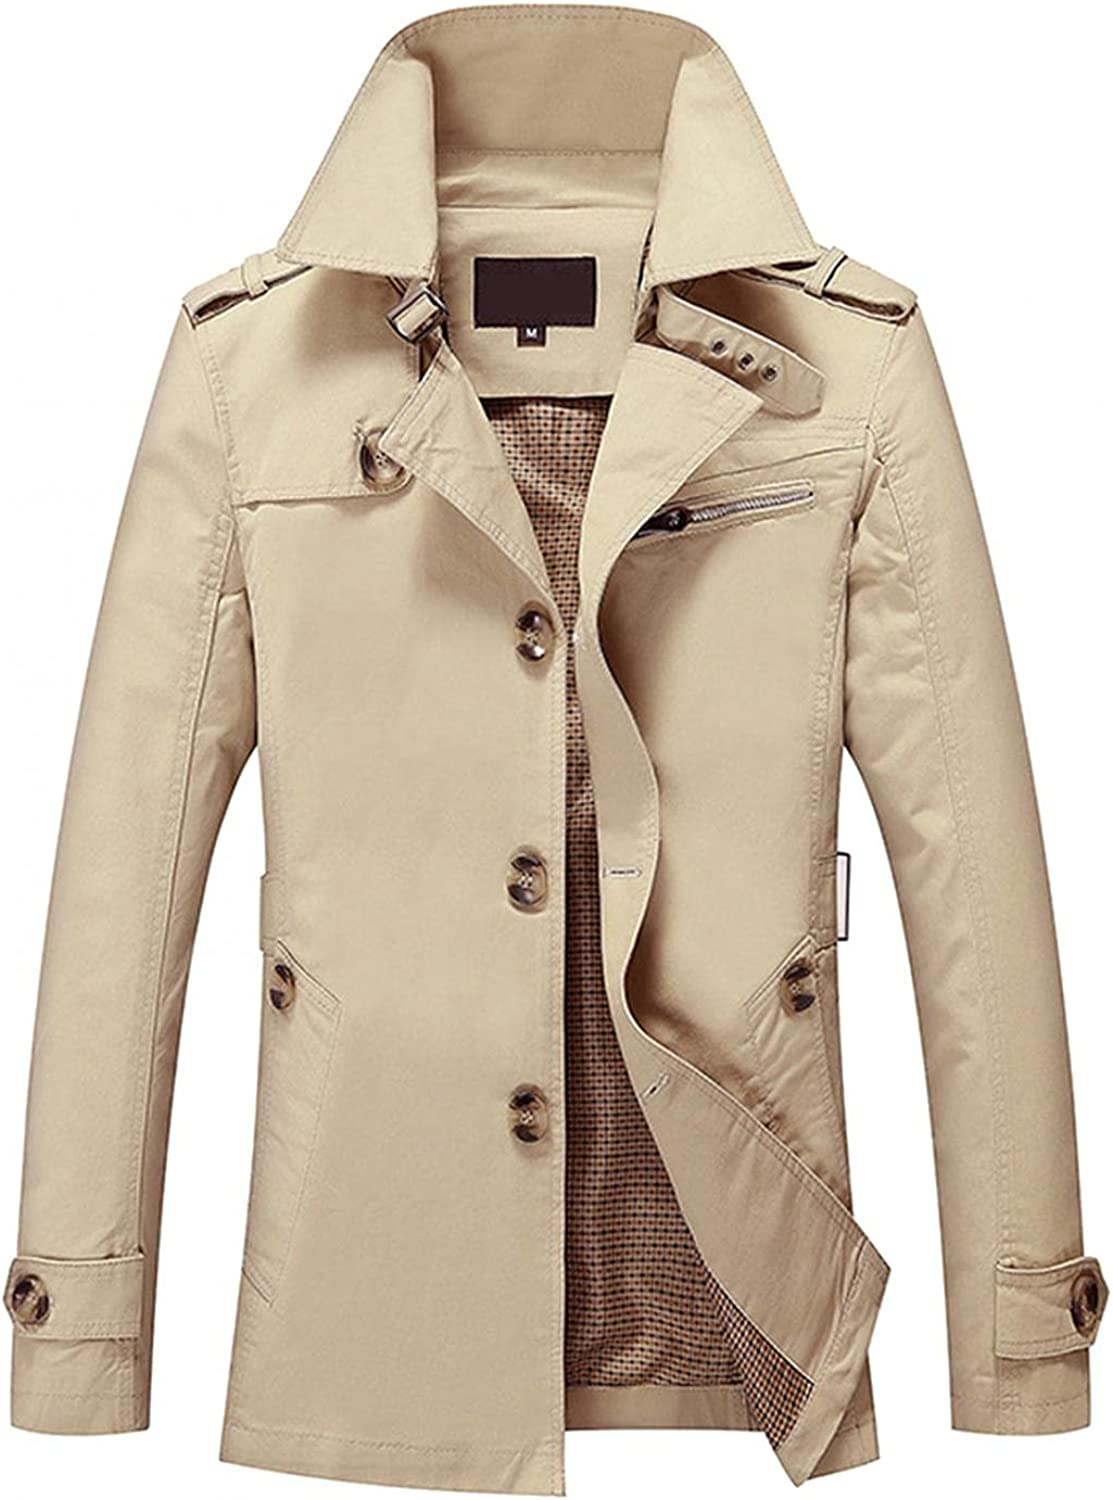 LEIYAN Mens Oversized Trench Coat Long Sleeve Lapel Collar Button Down Casual Windproof Windbreaker Jackets Overcoat